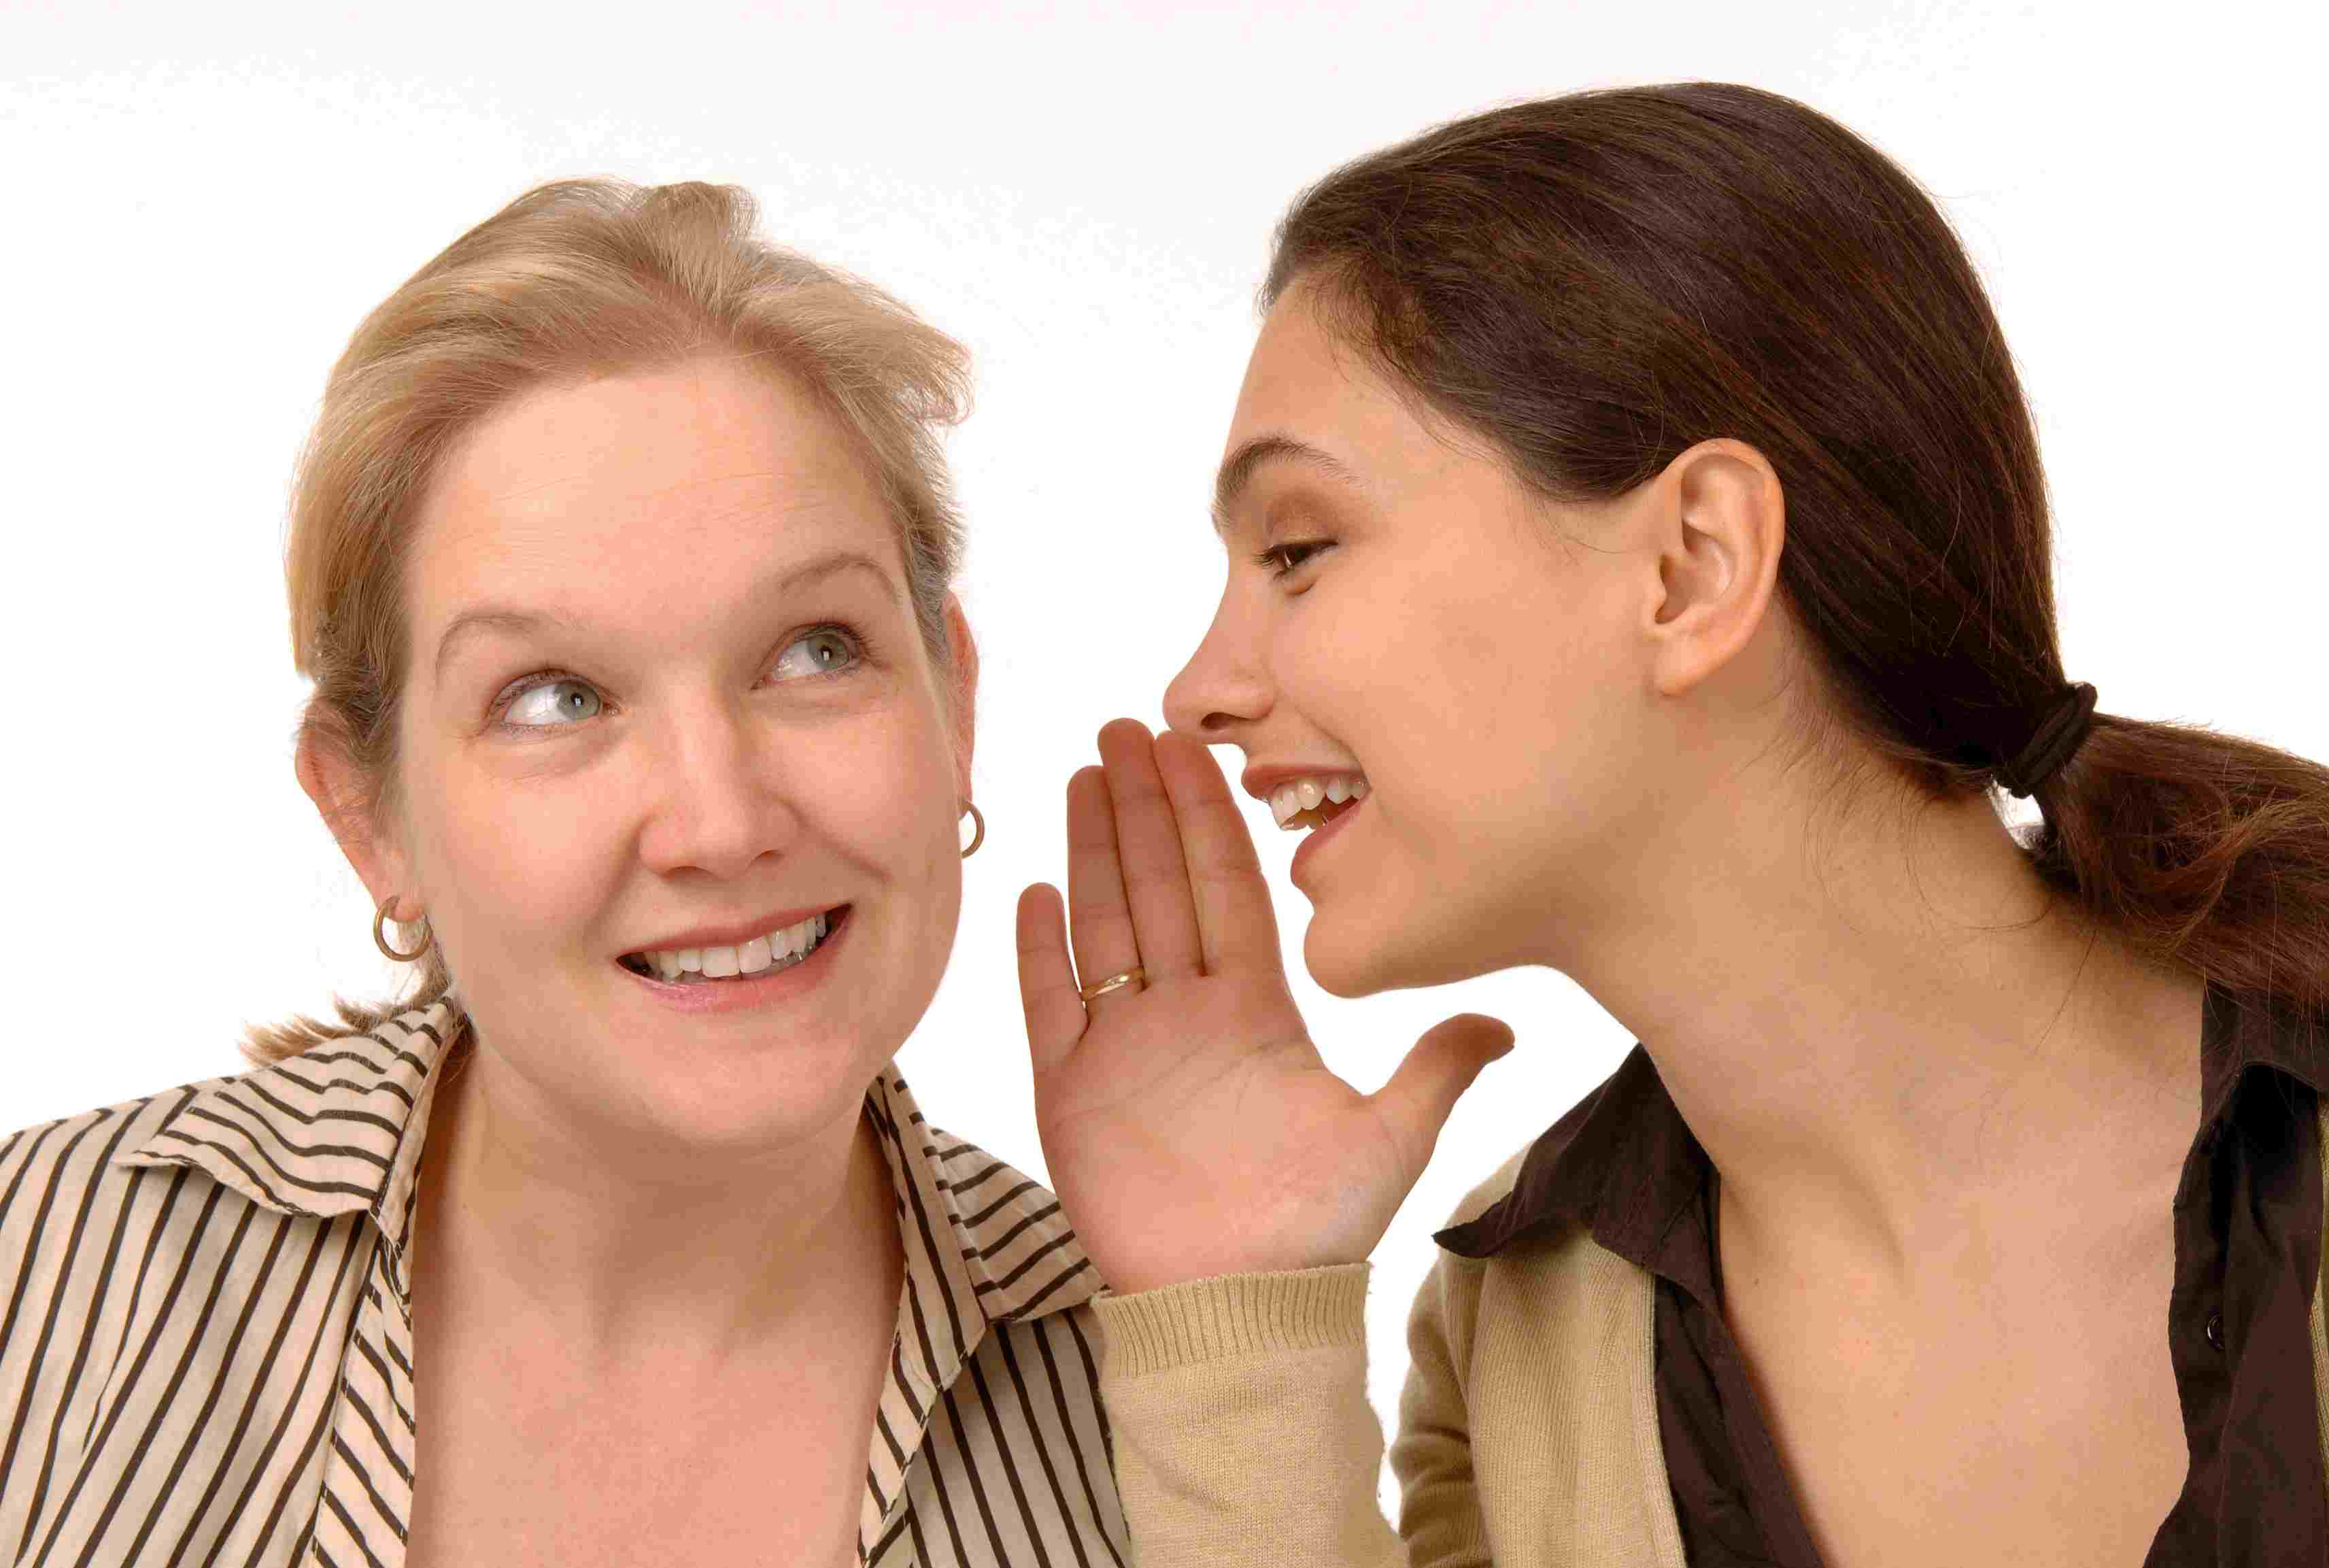 woman whispering to woman